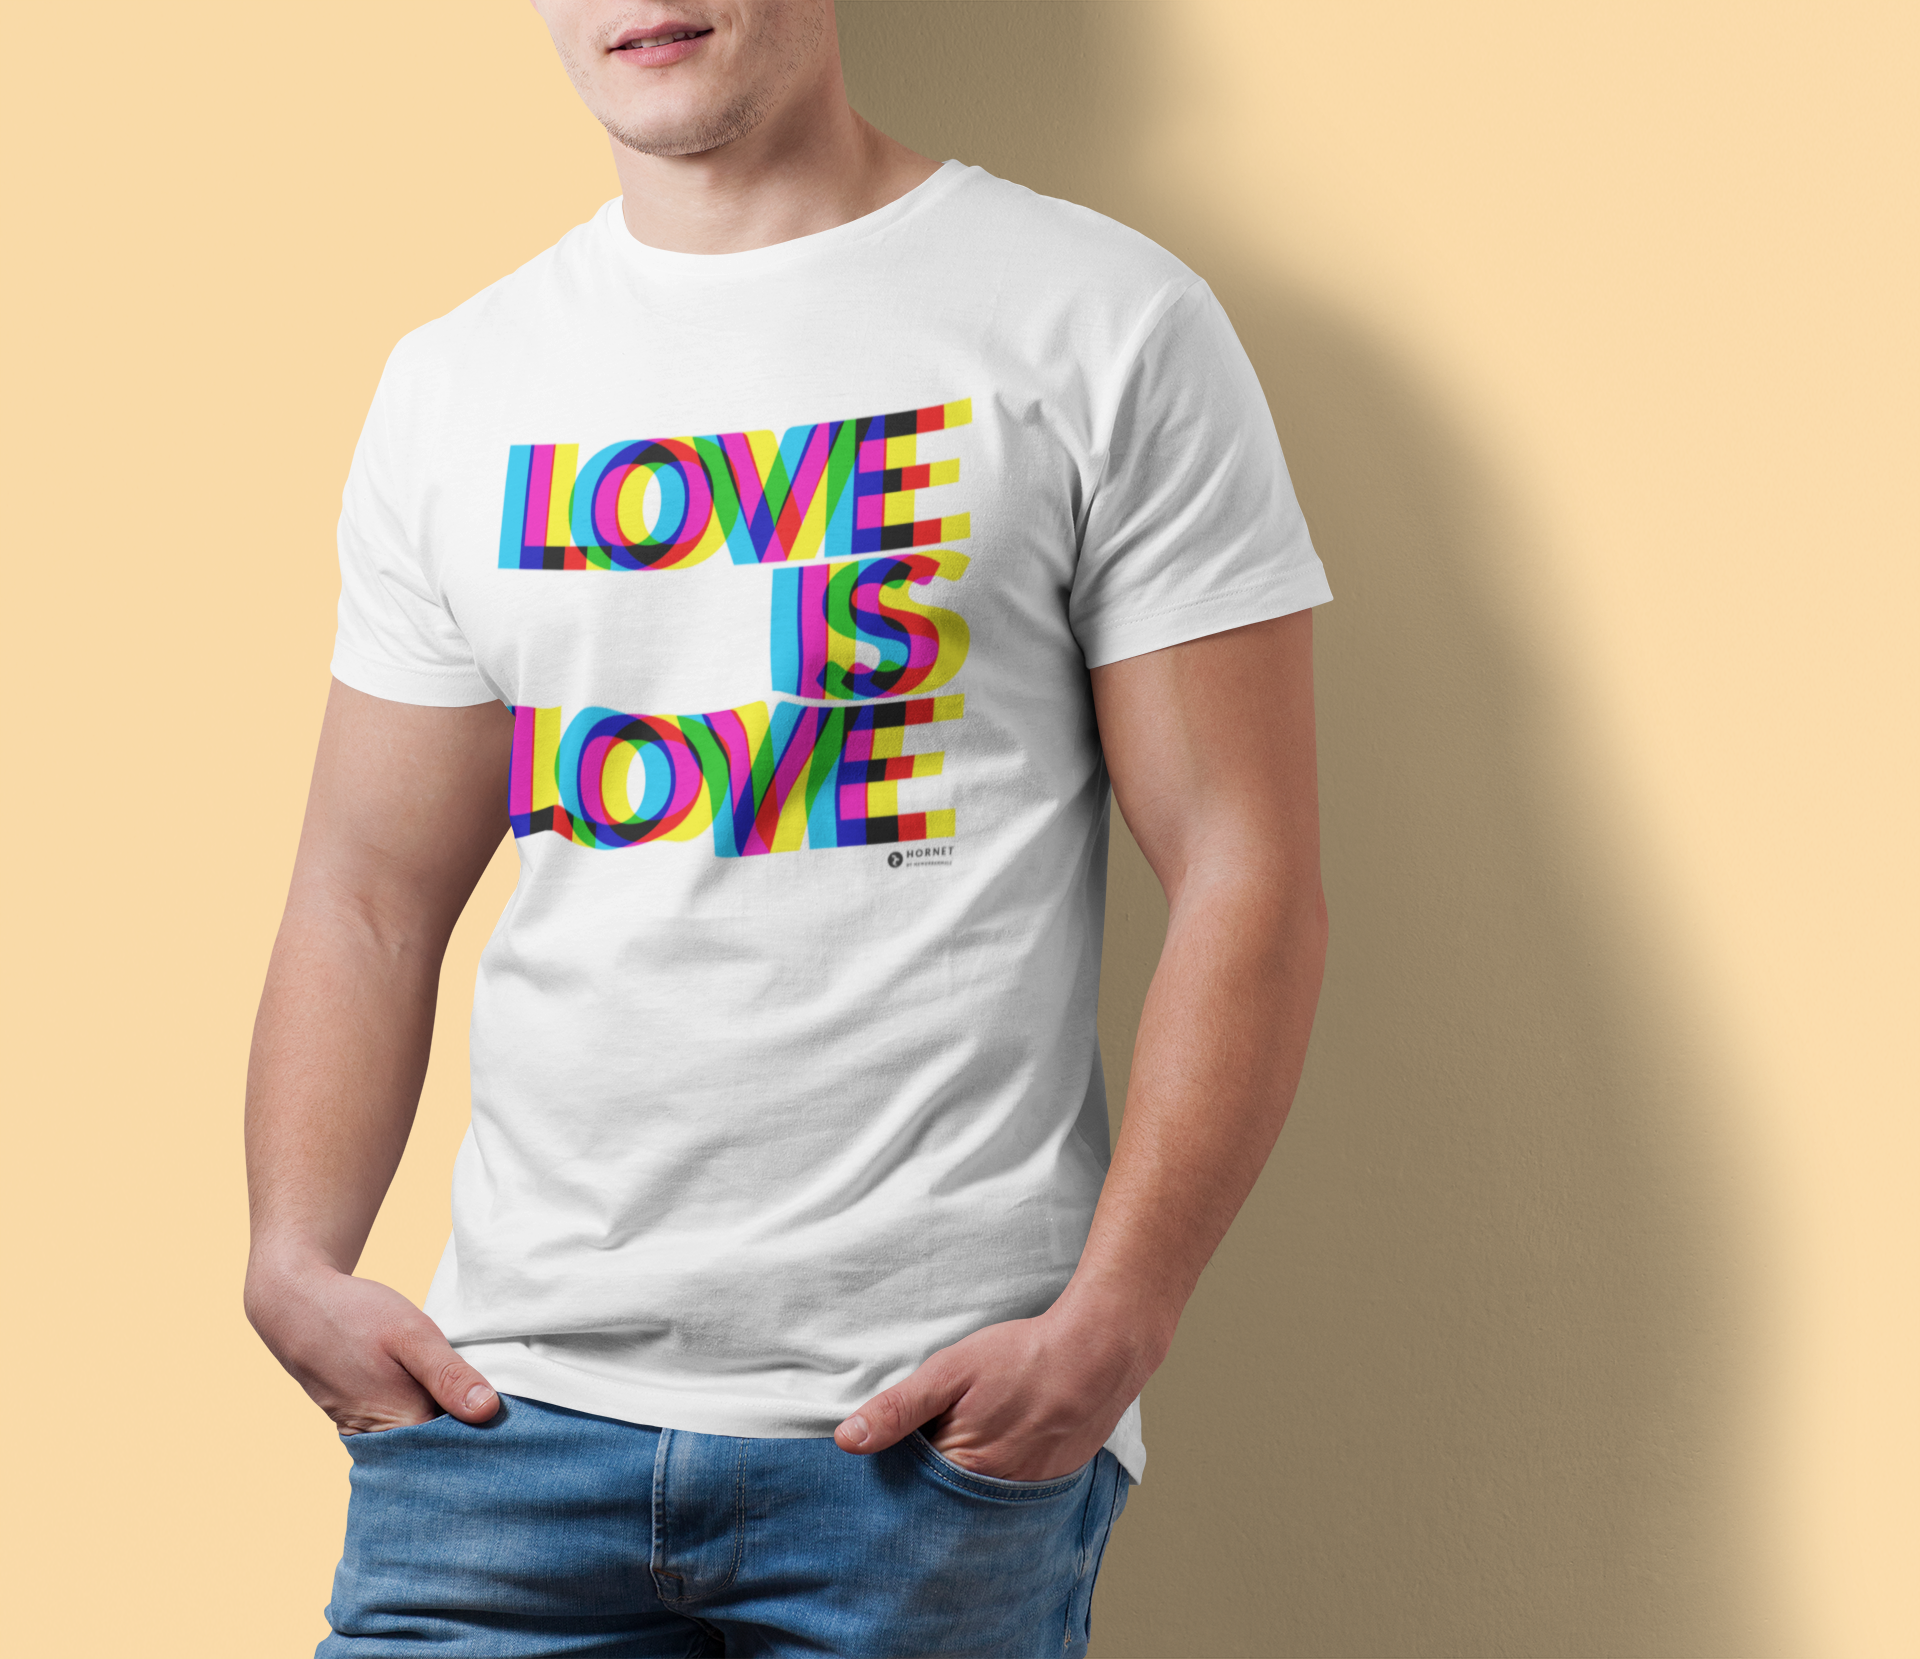 cropped-faced-mockup-of-a-man-wearing-a-customizable-t-shirt-at-a-studio-2977-el1 (1).png